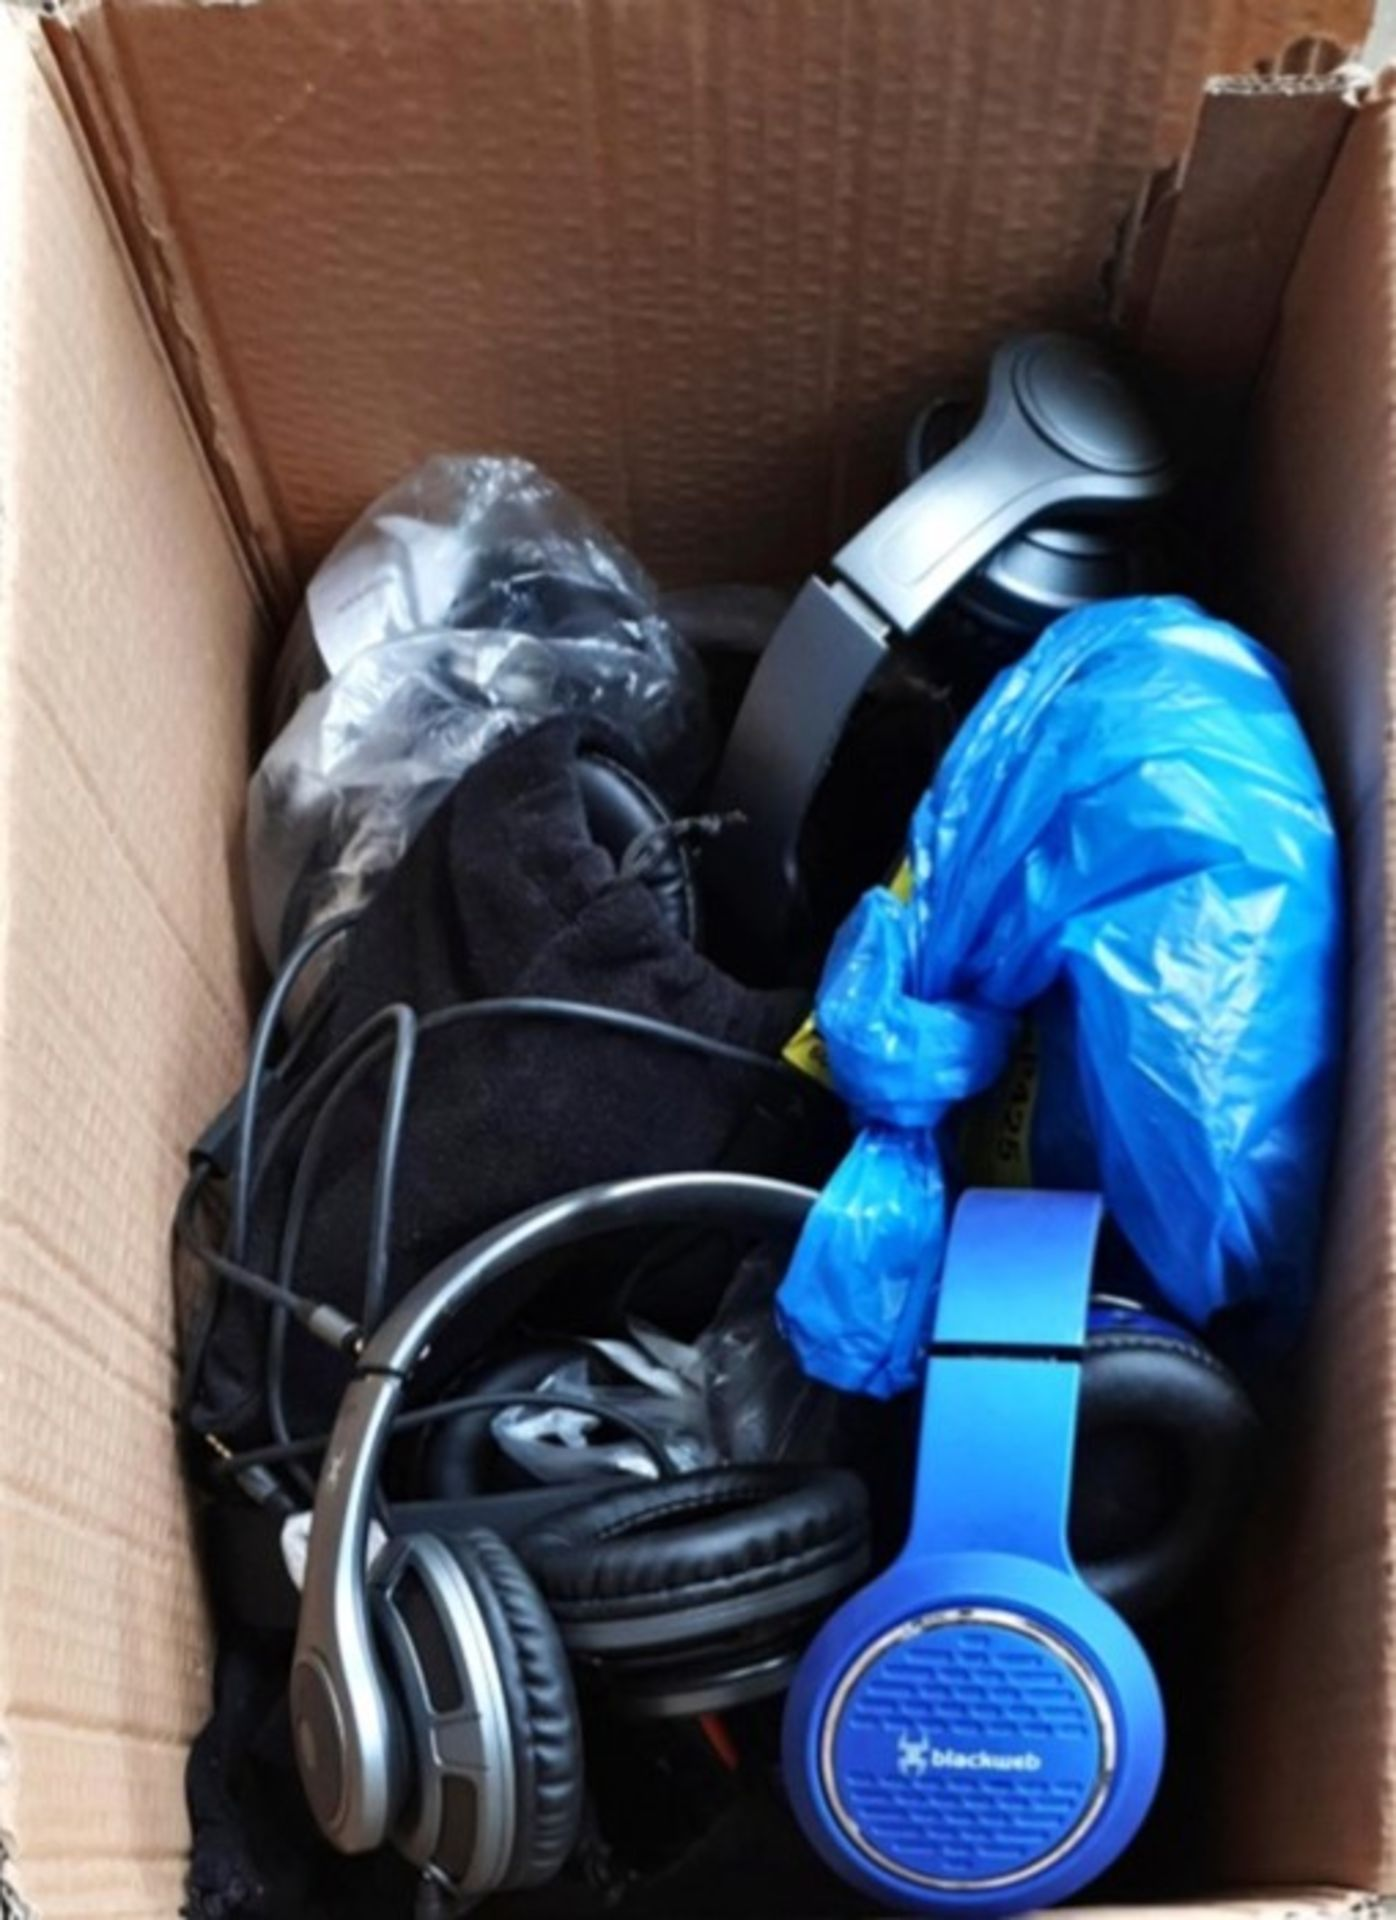 Lot 16 - 1 LOT TO CONTAIN ASSORTED HEADPHONES / MODELS, COLOURS AND CONDITIONS VARY / APPROX 10 ITEMS (